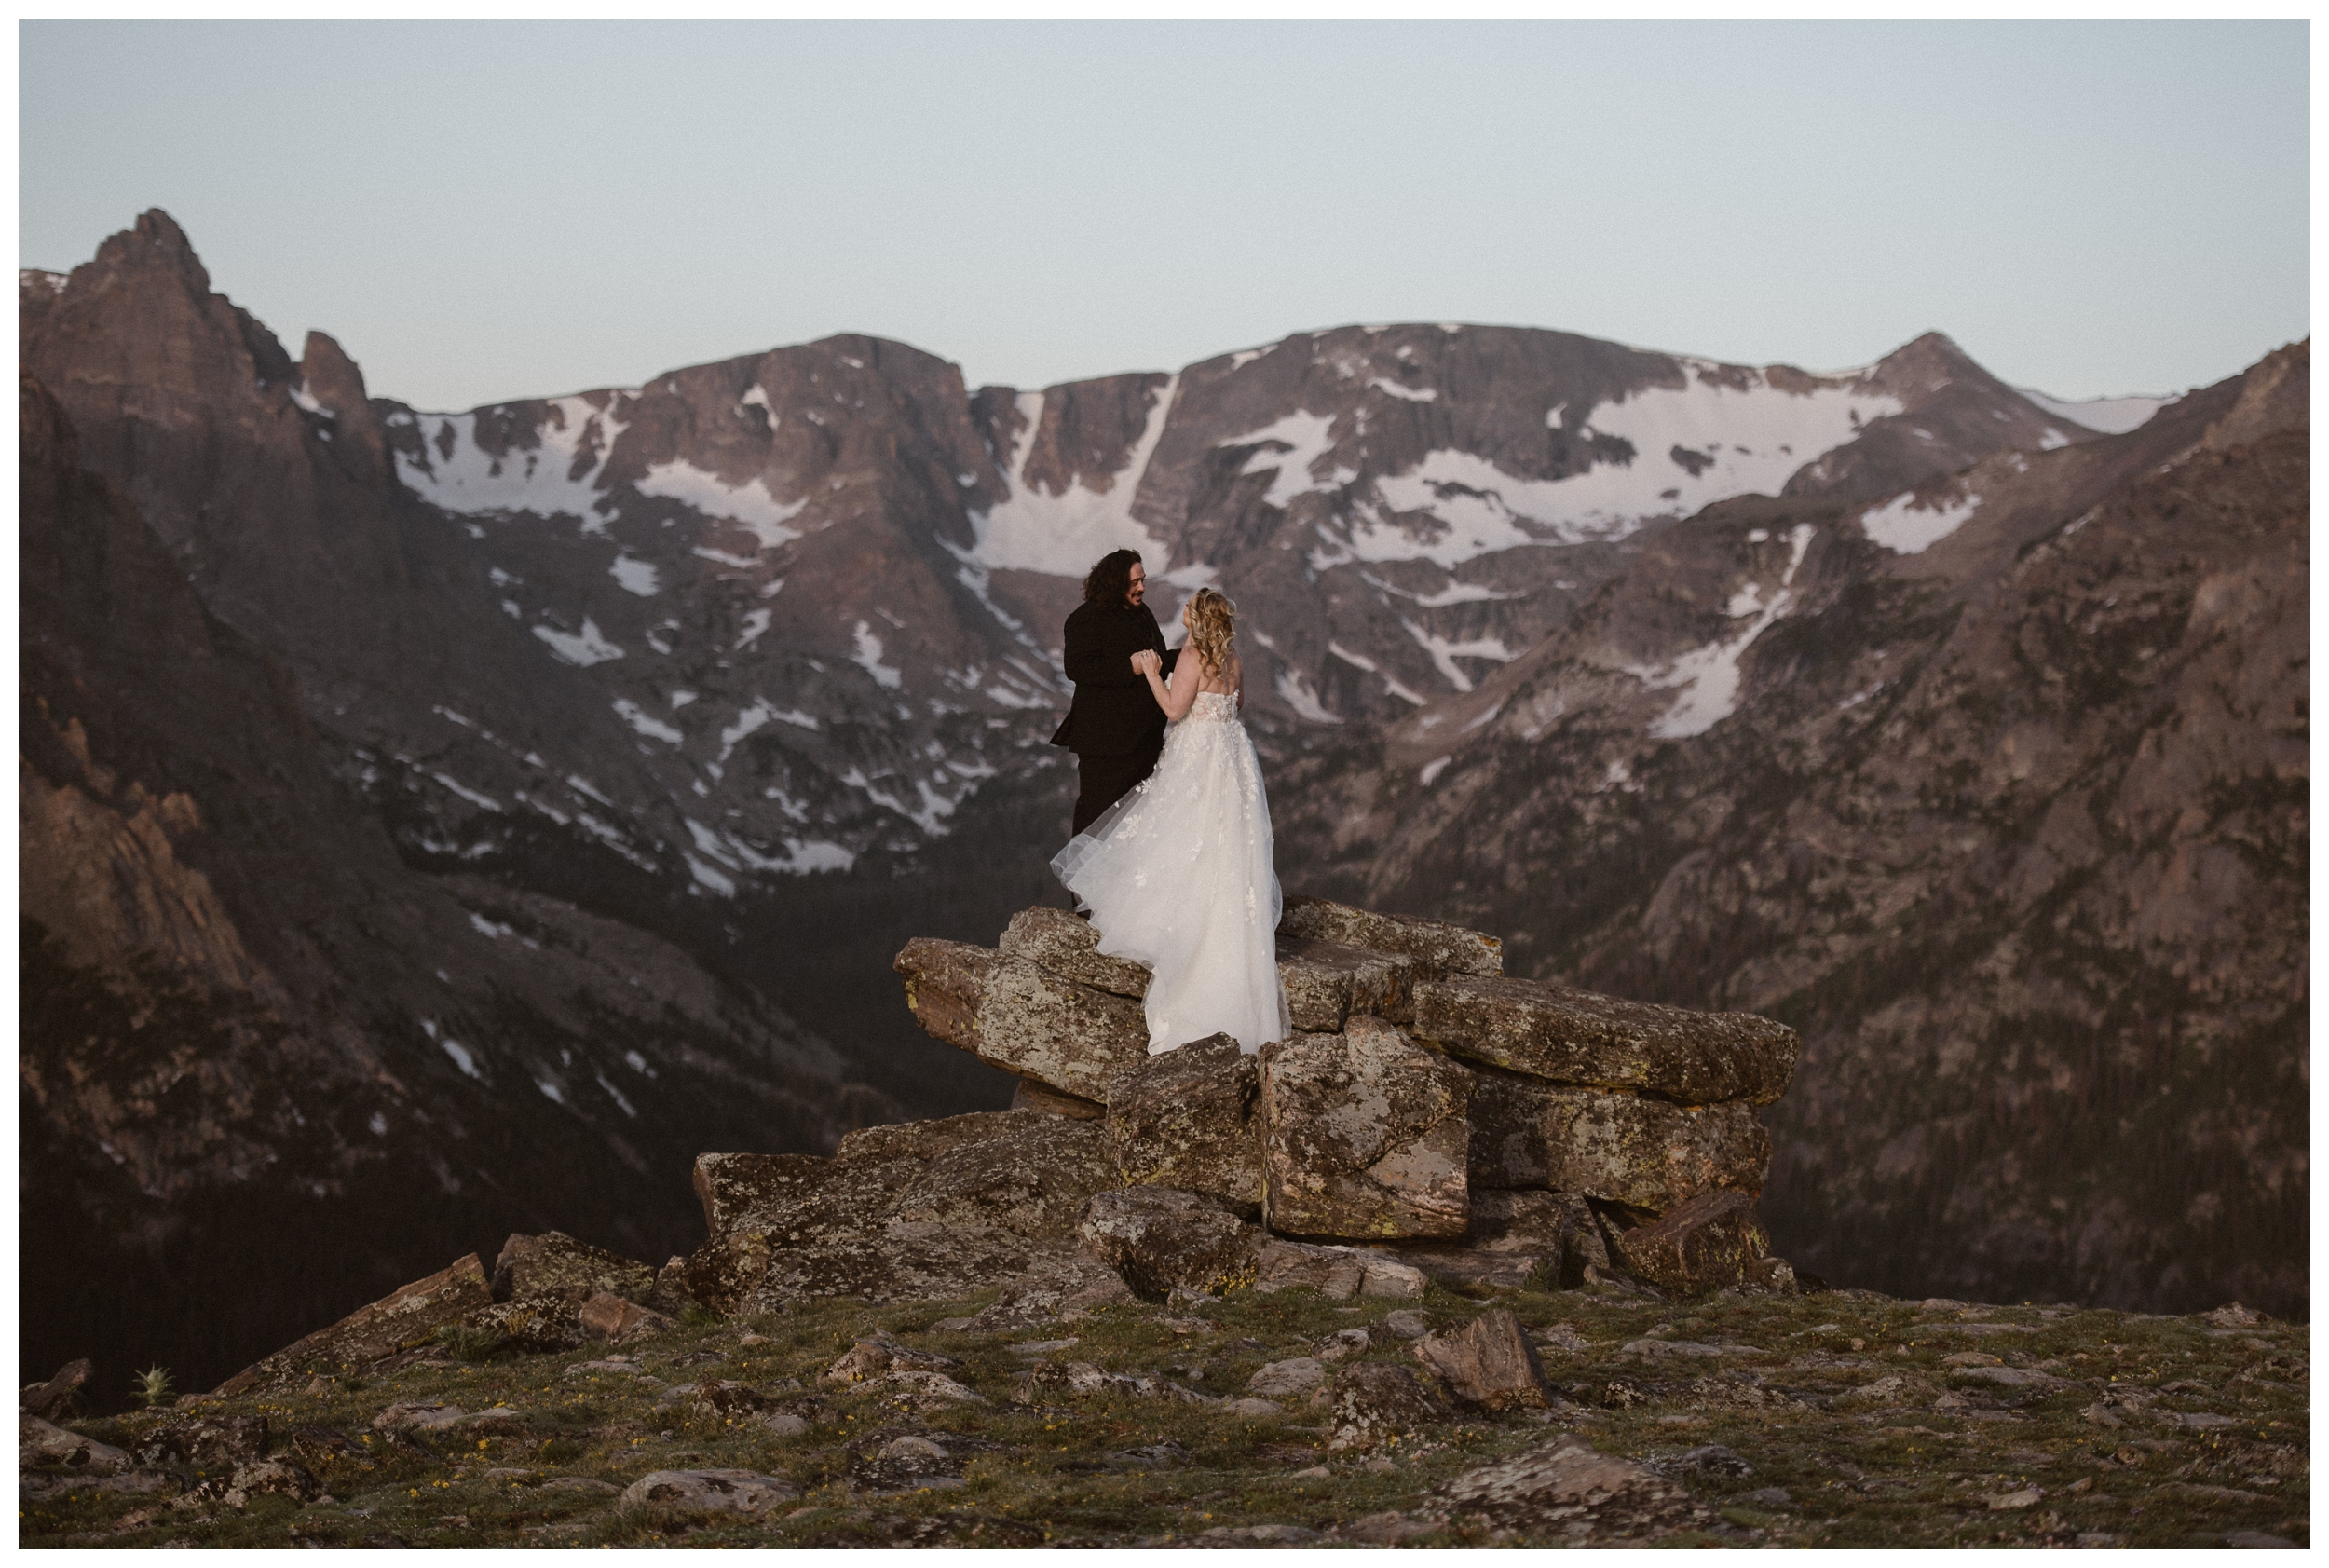 Alicia and Zach embrace at the top of Trail Ridge Road for their first look before their intimate elopement ceremony in Rocky Mountain National Park. Photo by Adventure Instead, Maddie Mae.